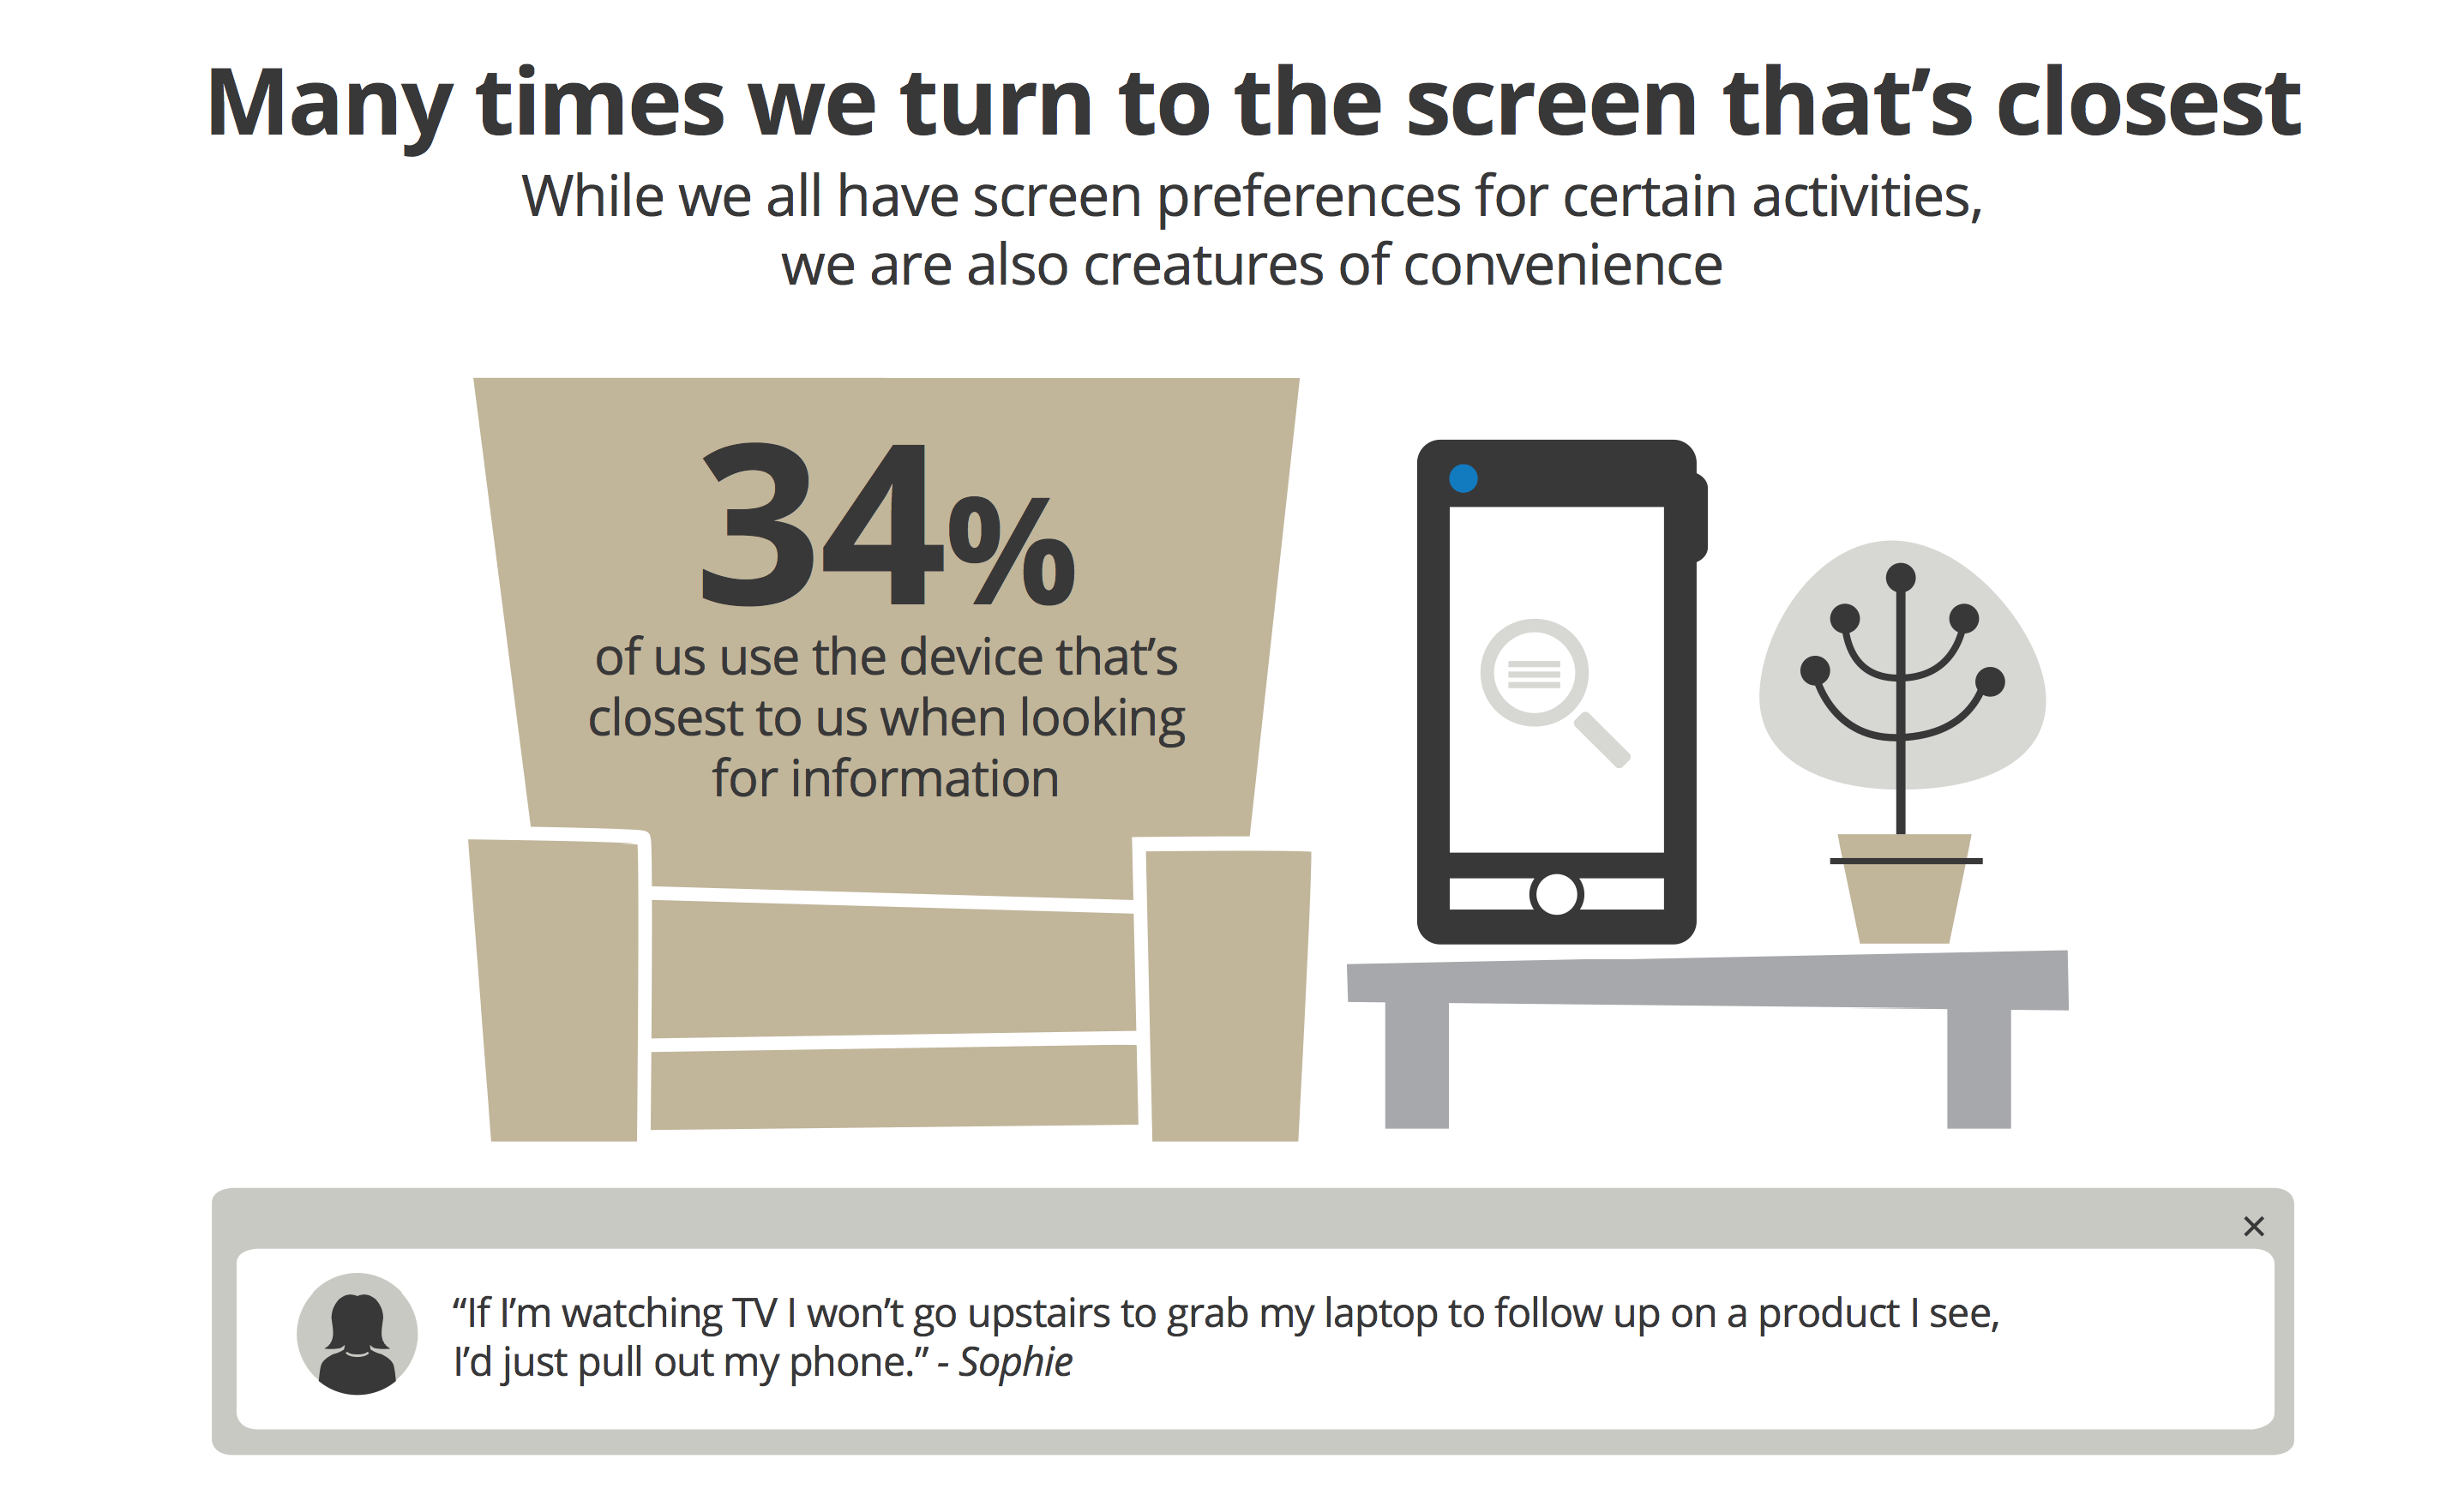 Many times we turn to the screen that is closest